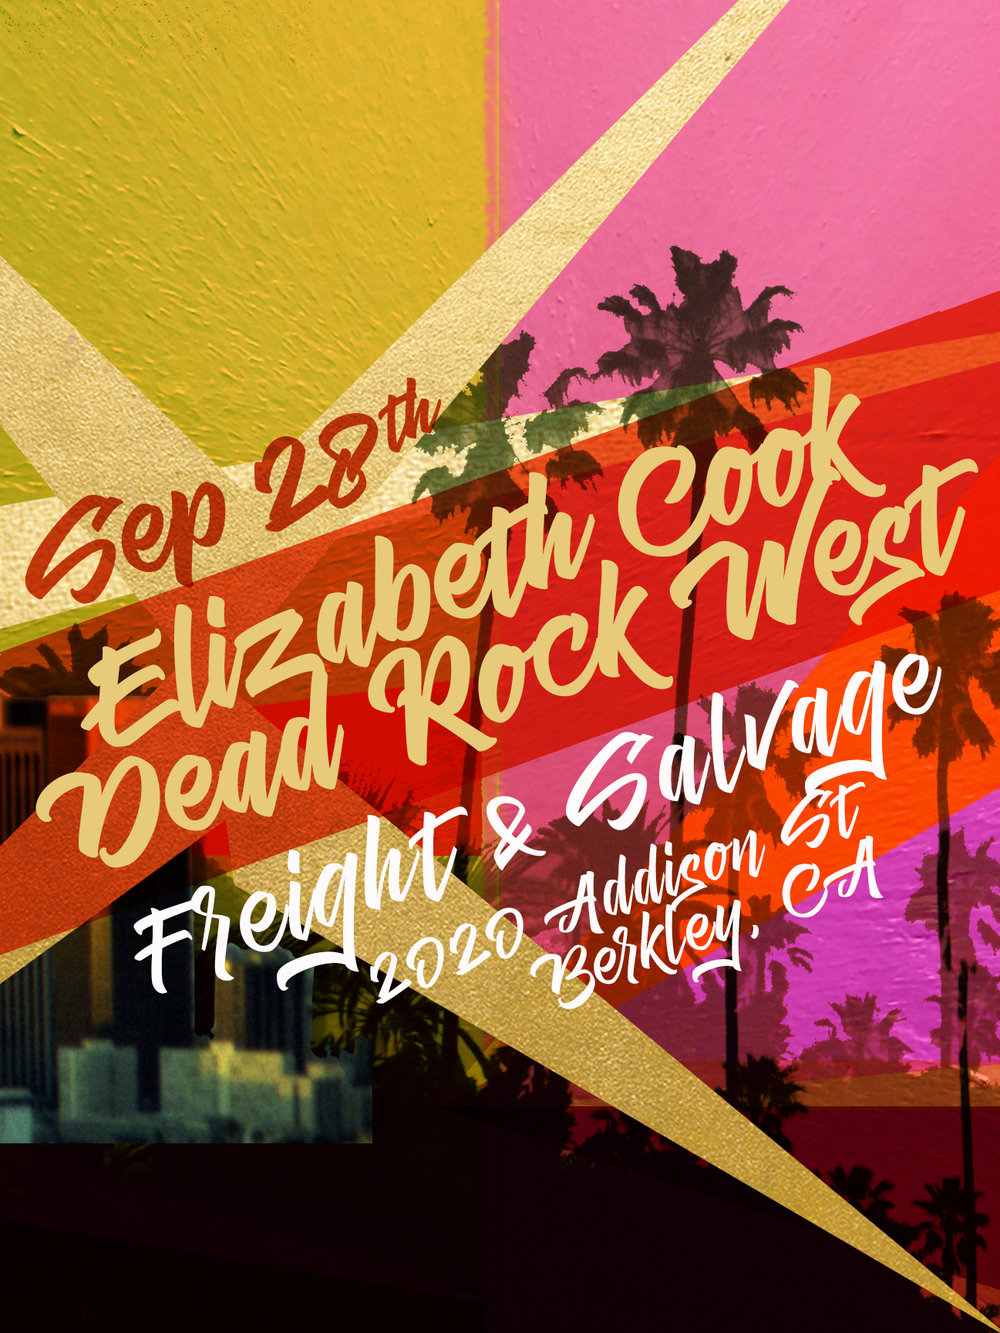 SEPTEMBER 28, 2017 w/ SIRIUS RADIO OUTLAW DJELIZABETH COOK - Live at Freight & Salvage in Berkley, CA'MORE LOVE'!